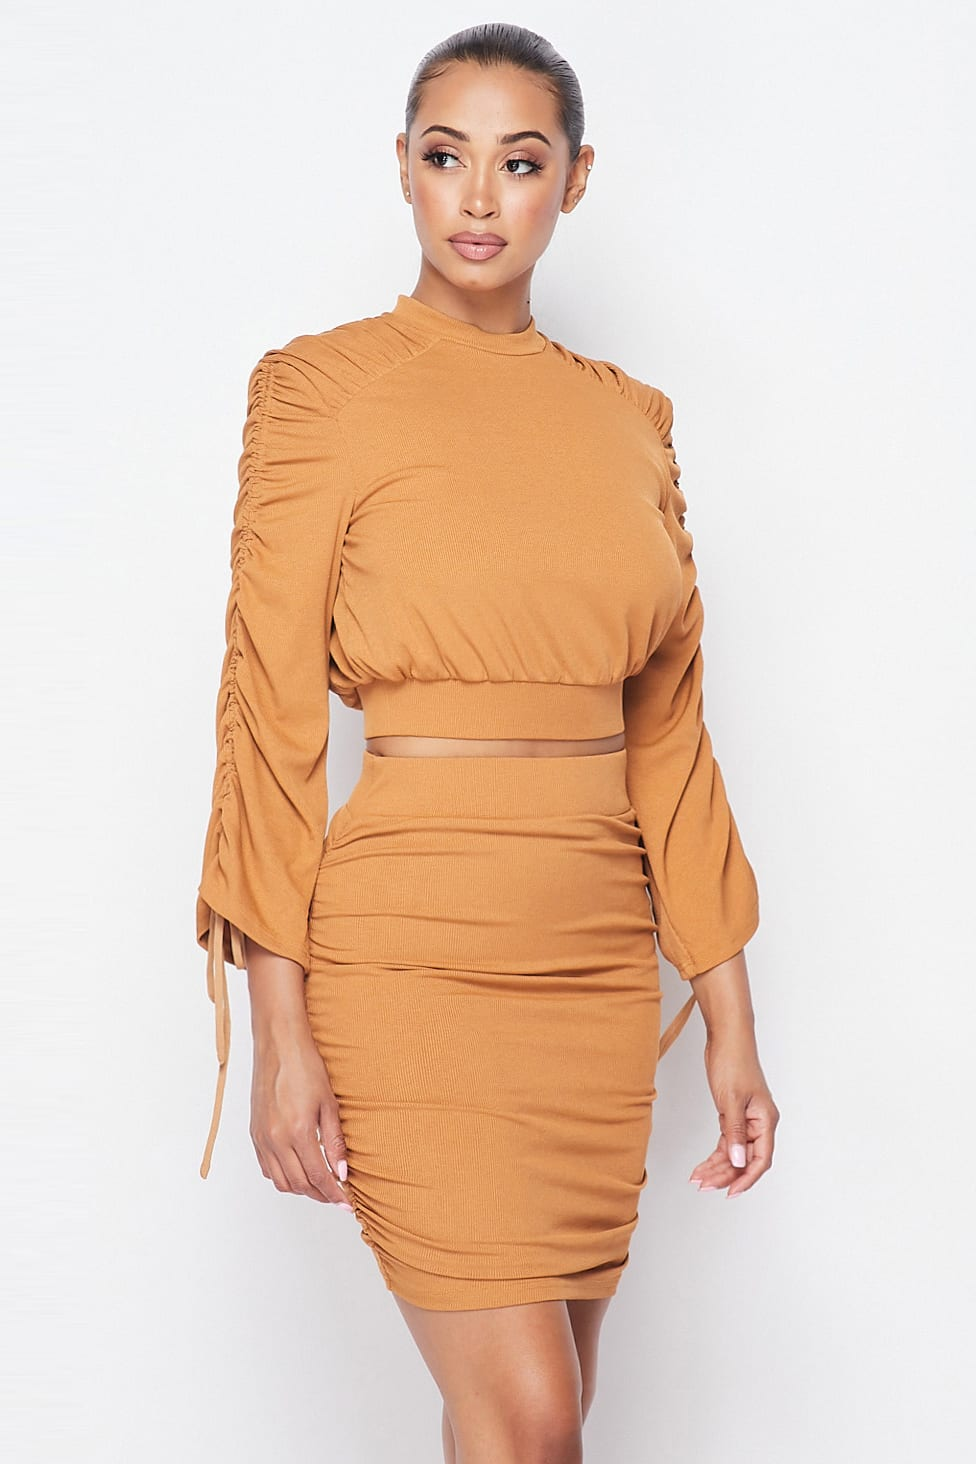 Two-Piece Ruched Long Sleeve And Skirt Set - Local Scenes Store